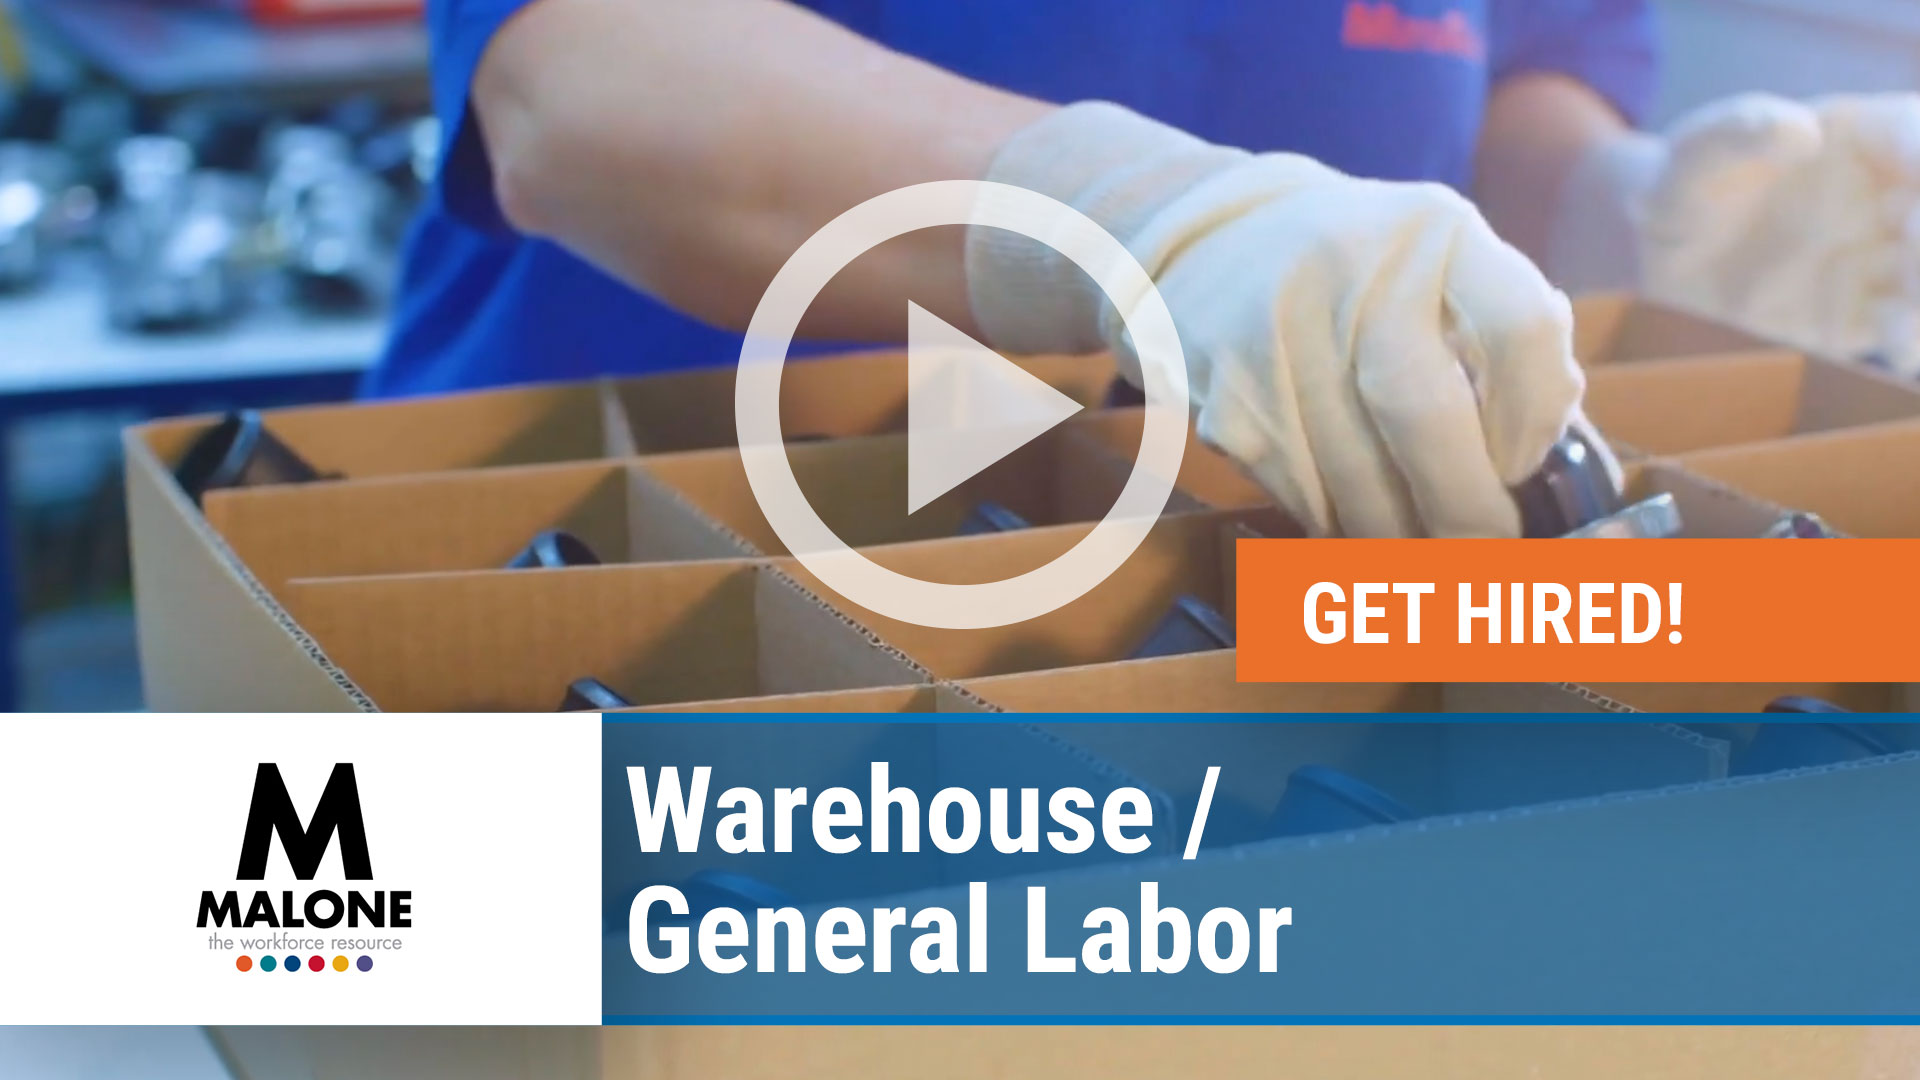 Watch our careers video for available job opening Warehouse - General Labor in Multiple Locations